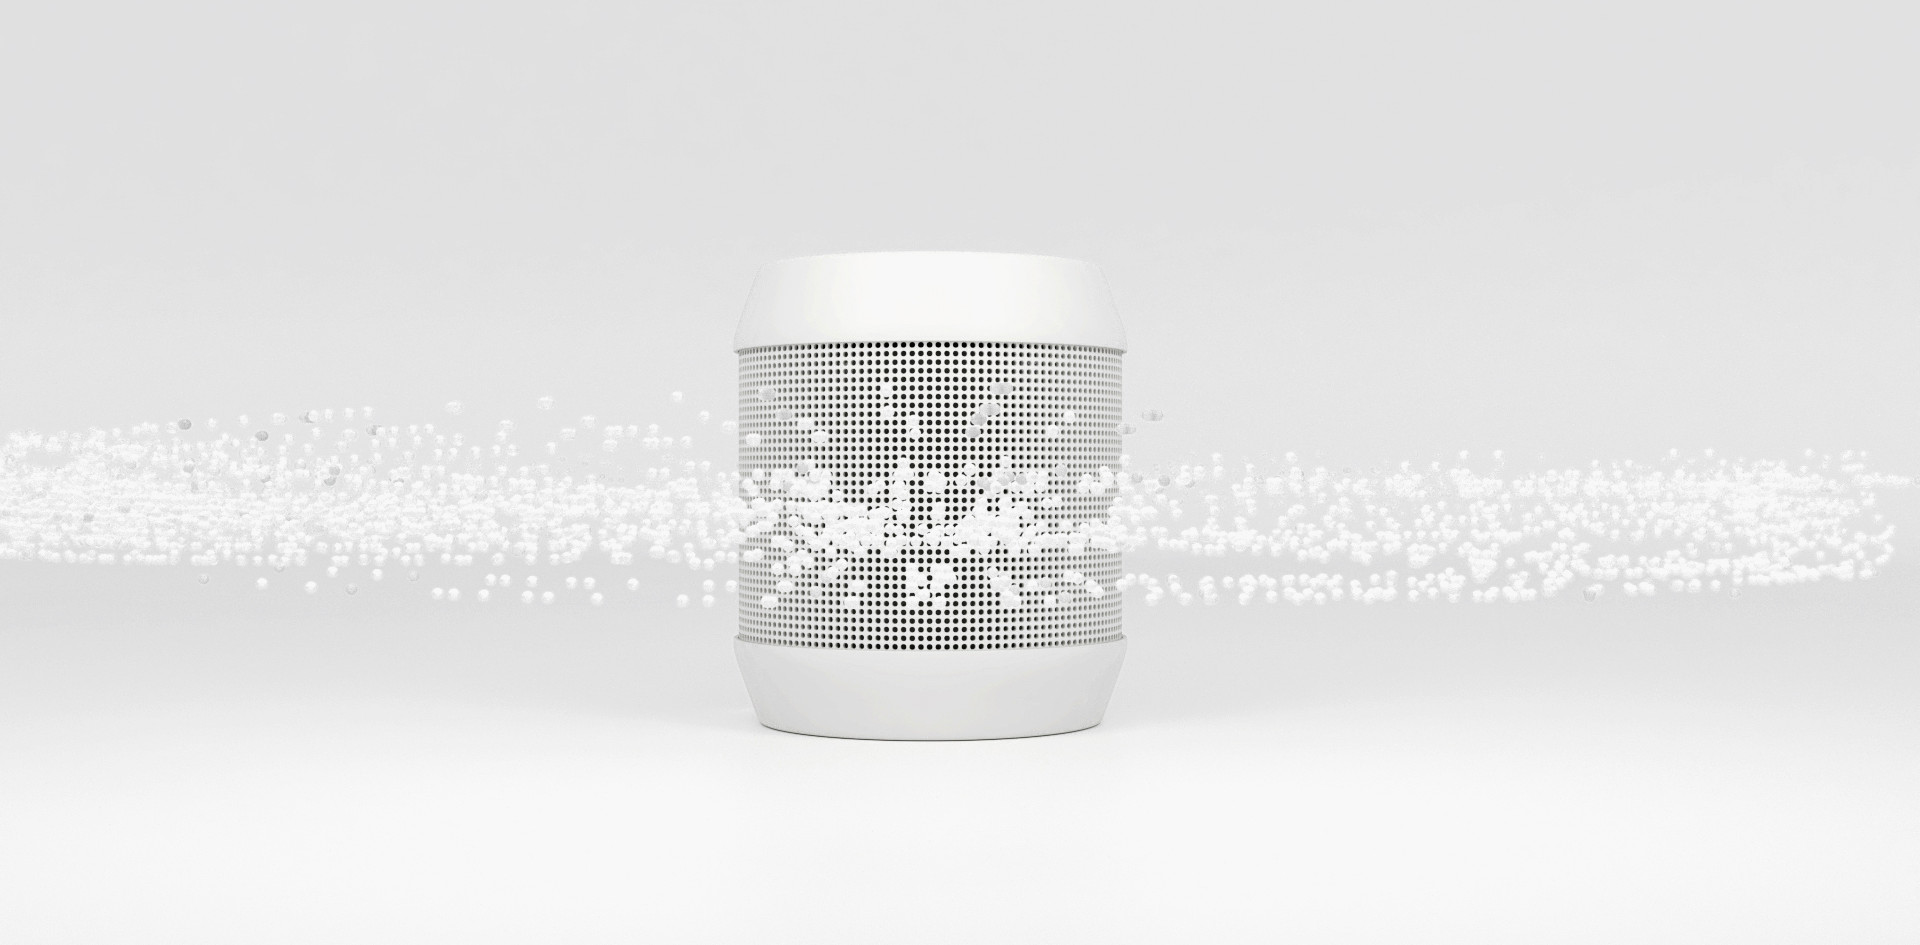 "Everyone likes music. Even you are at the office, in the park or at home, this speaker fits perfectly. It's elegance make it suitable for business or home use.  We wanted to present in the product animation video that the finest materials and most elegant gadgets can play the most premium classy sounds.  Rubicon3D is a 3D Product Animation Studio specialized in realistic product animations and full CGI commercial. Do you have an idea of a new product and want to present it to others? Do you want to start a project on kickstarter and  have an attractive presentation of your prototype? Are you a company that wants to engage more customers for your product or make a professional 3d product presentation for online platforms?  Or do you have only some scketches of your idea and want them to transform in a 3d realistic presentation?  Contact us and we can help you! We need only your idea and we will combine our knowledge and skills of 3d product animation and future-film style visual effects with High End photorealistic product 3D animation, visualization, product rendering and CGI commercials and we will bring your idea to life and make it unique.  Don't hesitate to write us because ""no one ever made a difference by being like everyone else!""    This particular video shows the use of CGI visualization to demonstrate realistic visualizations headphones. The possibilities are endless and the end product is unlike anything that could be achieved with standard videography, including demonstration of small details which would be impossible or difficult to shoot.   Tags: 3d animation studio visual effects cgi visualization product 3D commercial 3D advertisement headphones rendering autocad realistic CAD rendering photorealistic visualization vfx    #productrendering #productanimation #productvisualization #product3dcommercial #3Dvisualization #3dartist #autocad #keyshot #solidworks #vray#tradeshowbooth #tradeshow #3dartist #eventmarketing #productvideo #producttrailer"